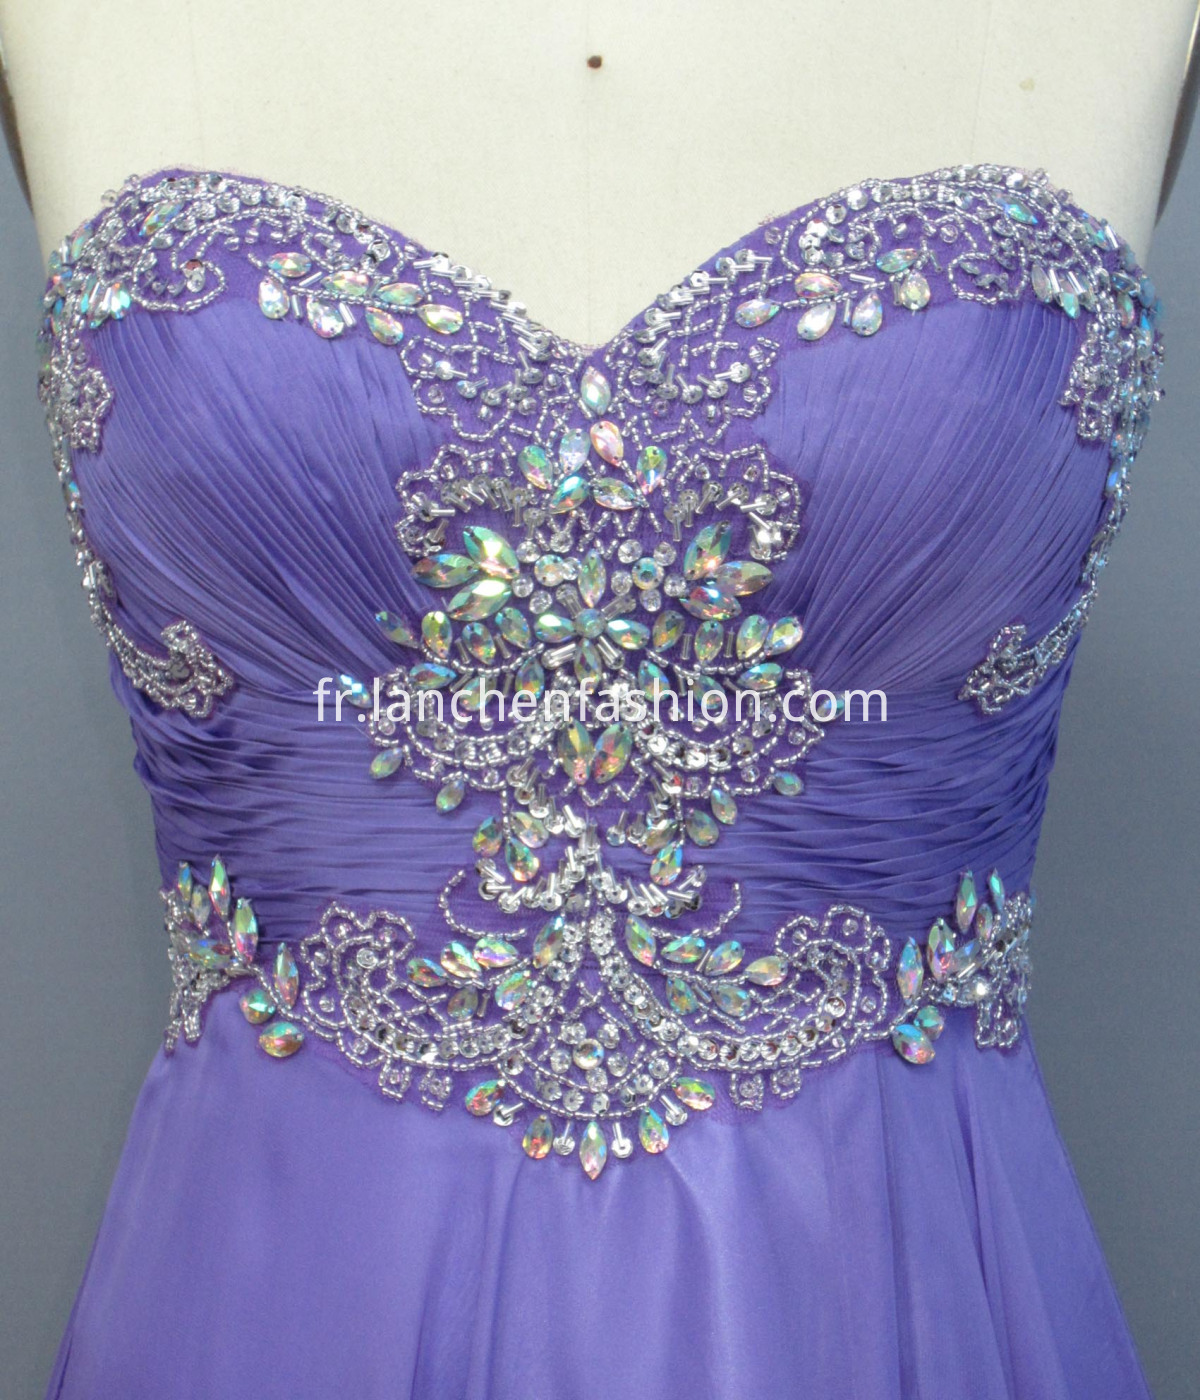 Prom Maxi Dress LAVENDER